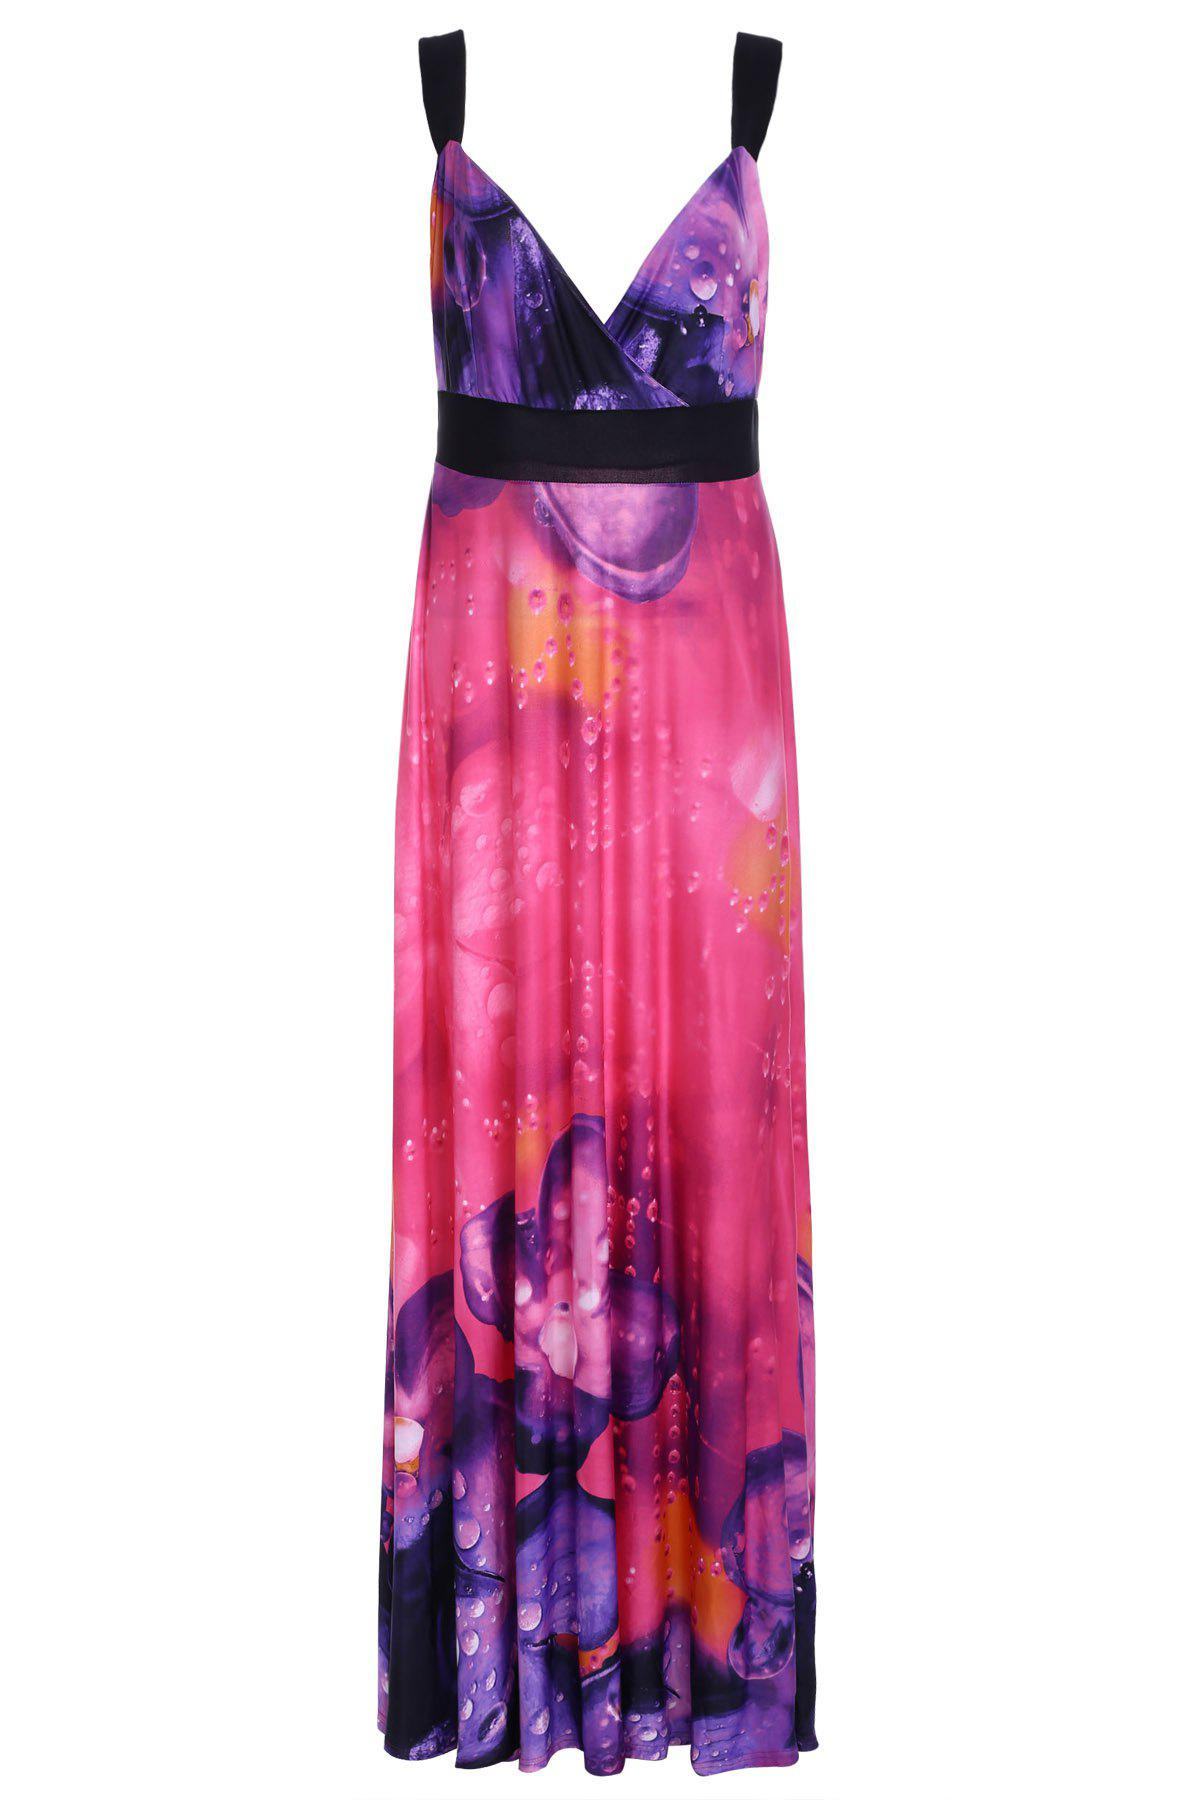 Alluring Women's Plunging Neck Spaghetti Strap Floral Print Maxi Dress - RED XL